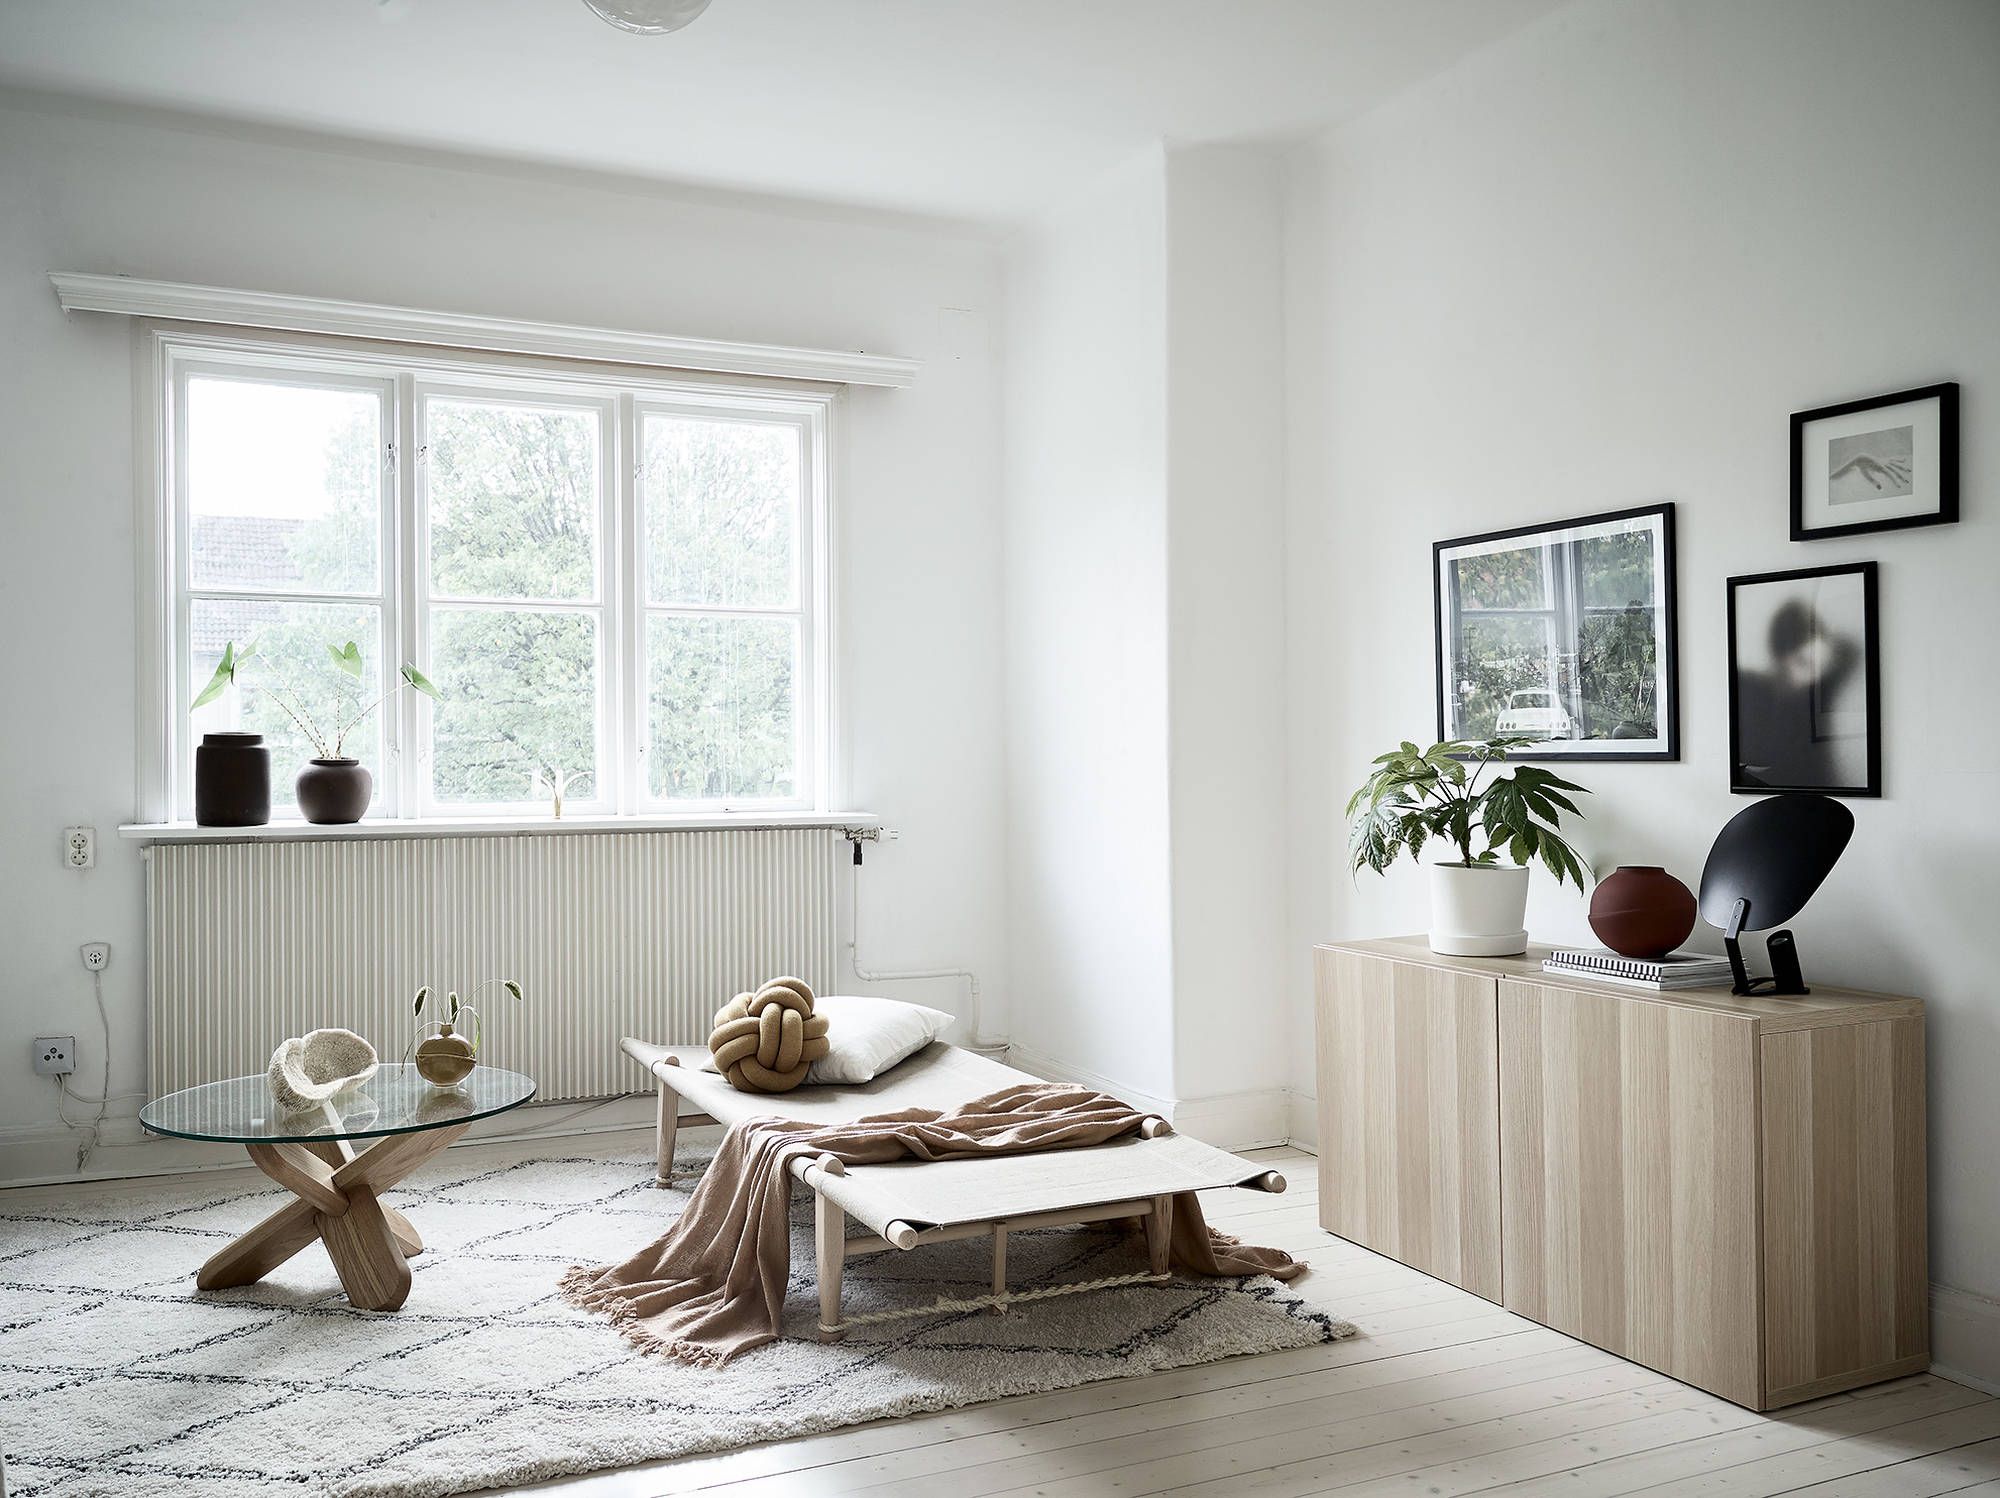 Minimal Living Room In Natural Colors Coco Lapine Designcoco Lapine Design